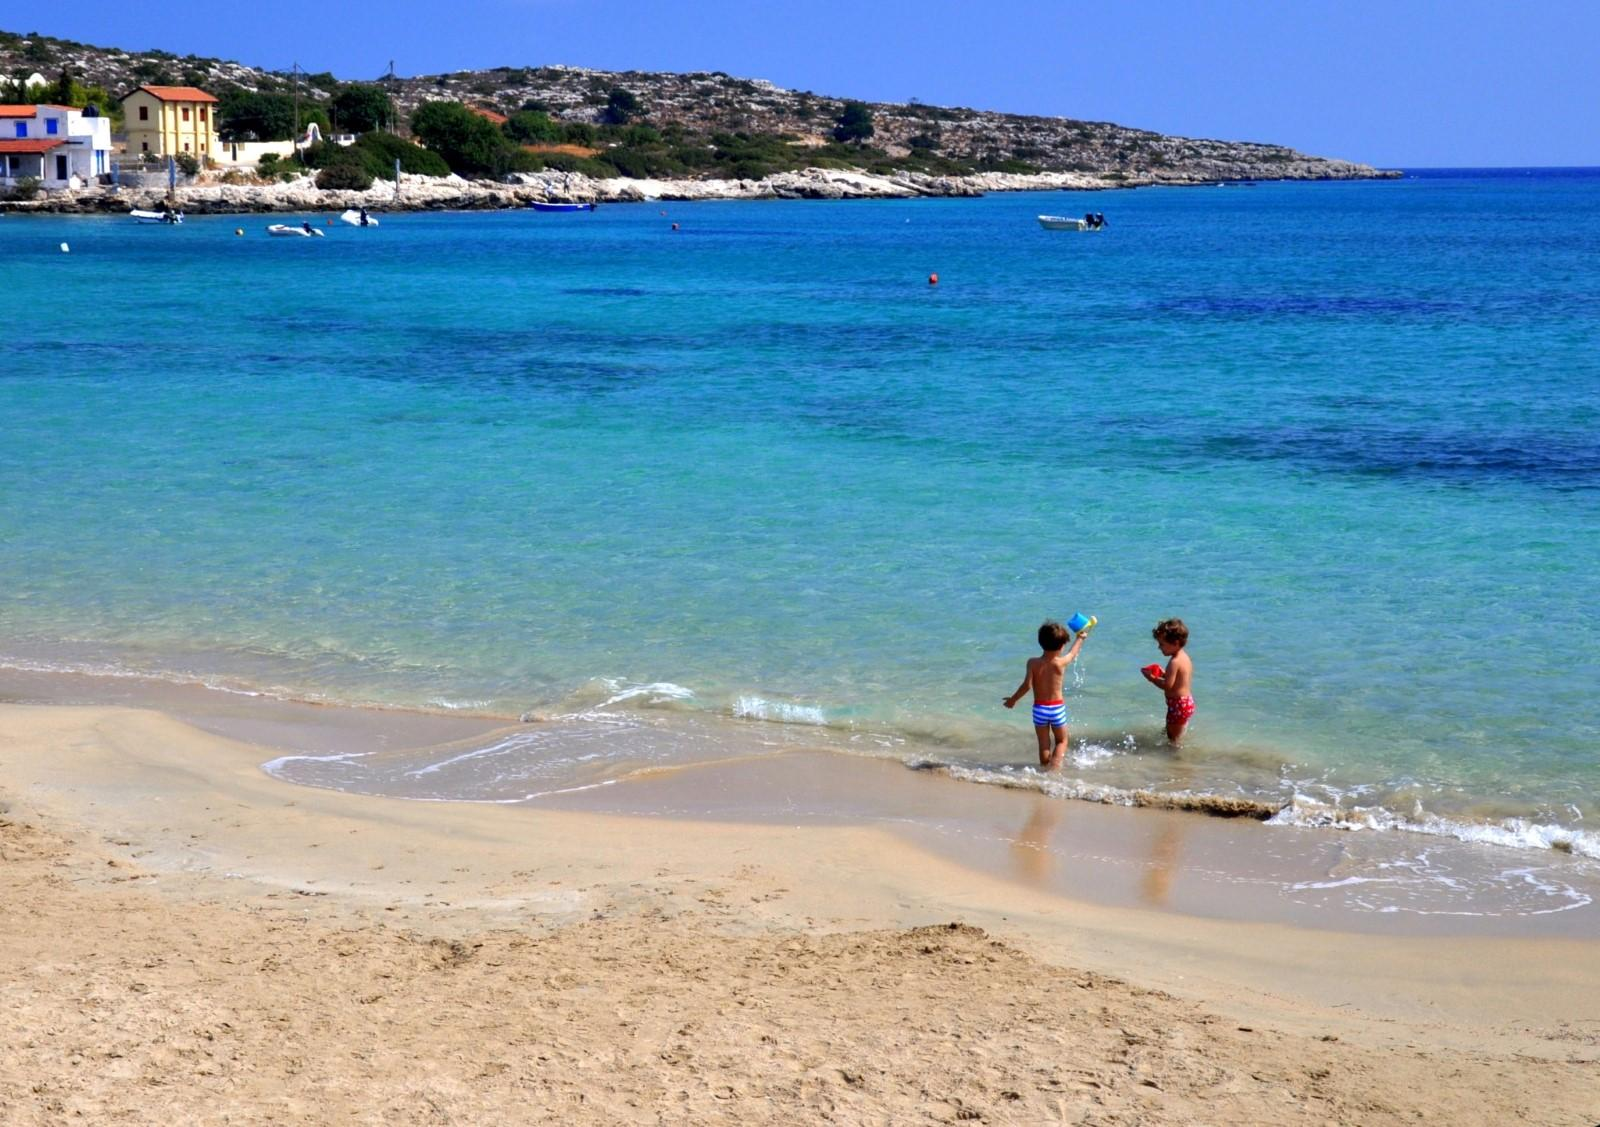 Marathi beach Chania KidsLoveGreece.com